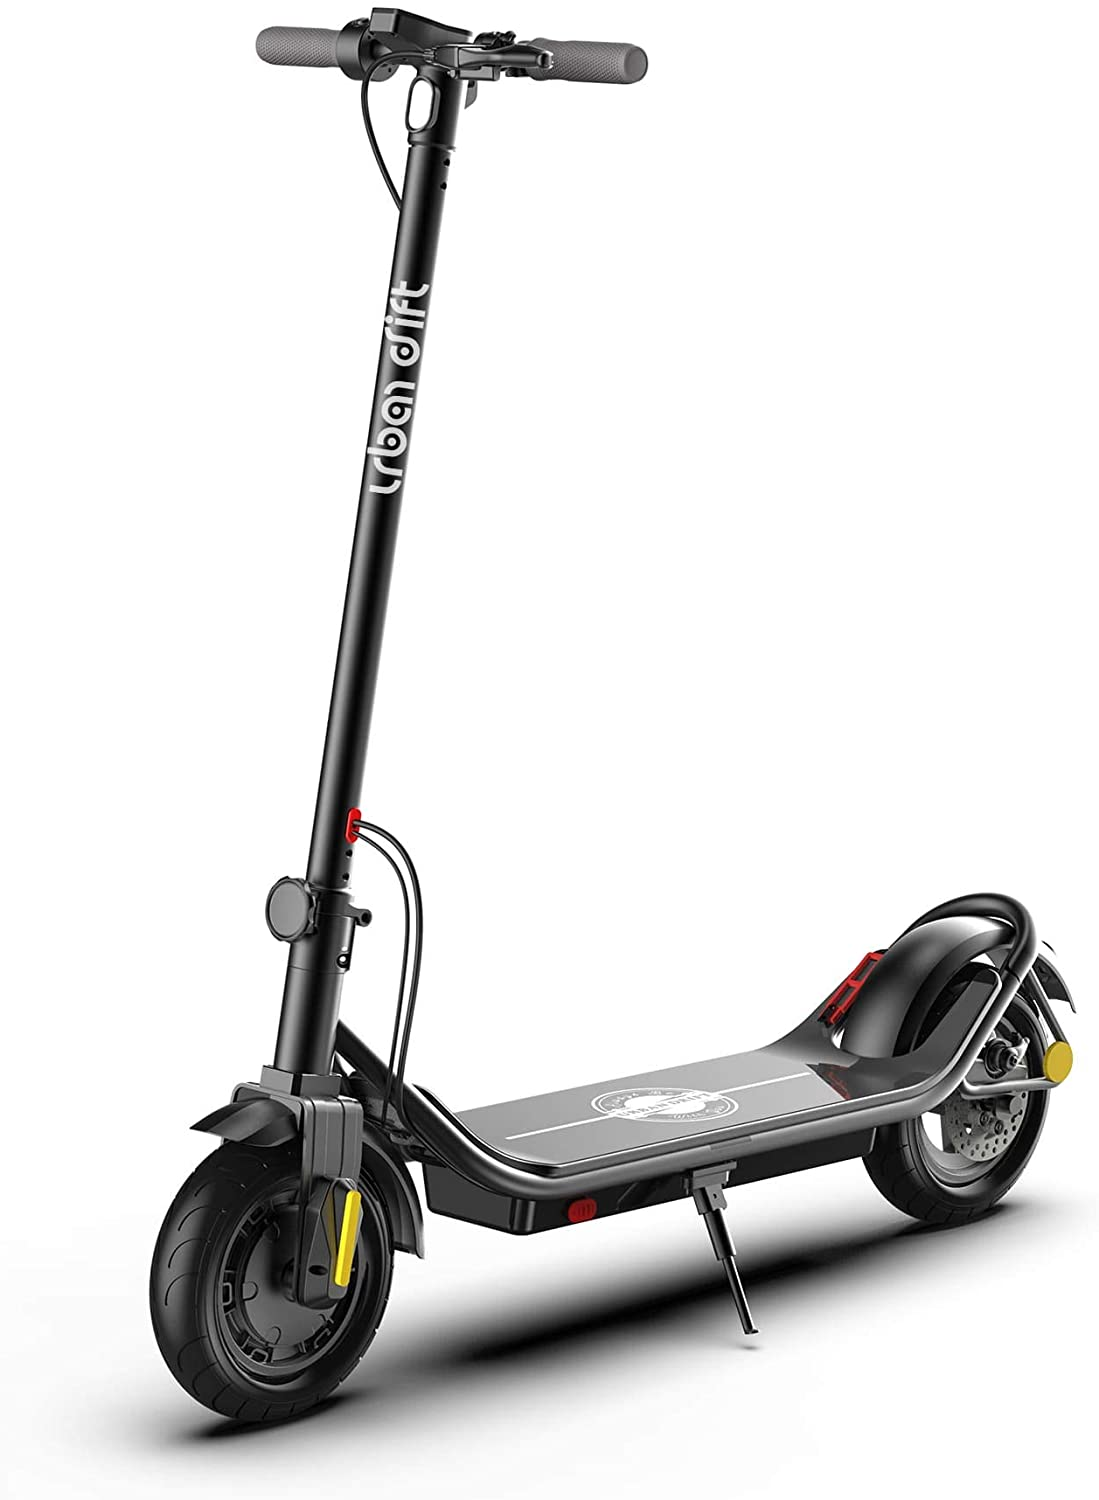 Urban Drift S006 Electric Scooter Review